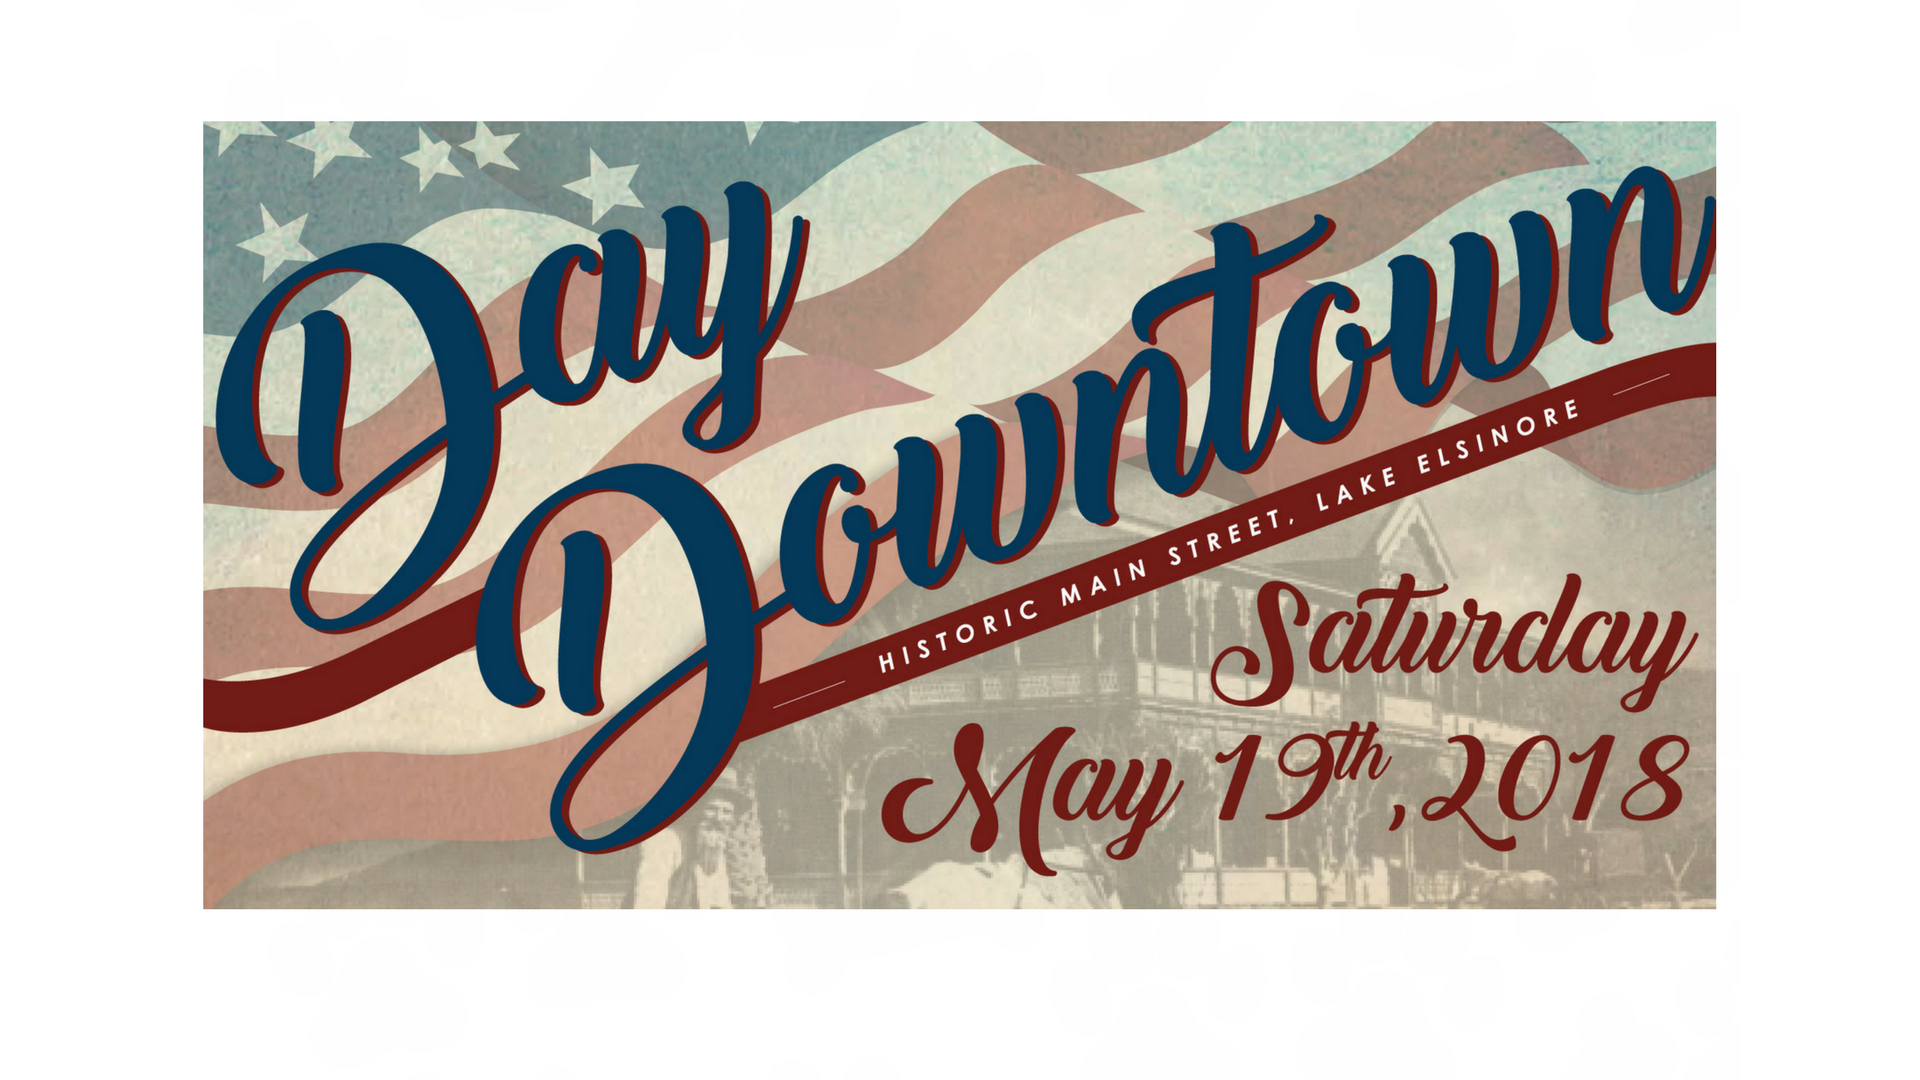 day downtown web banner